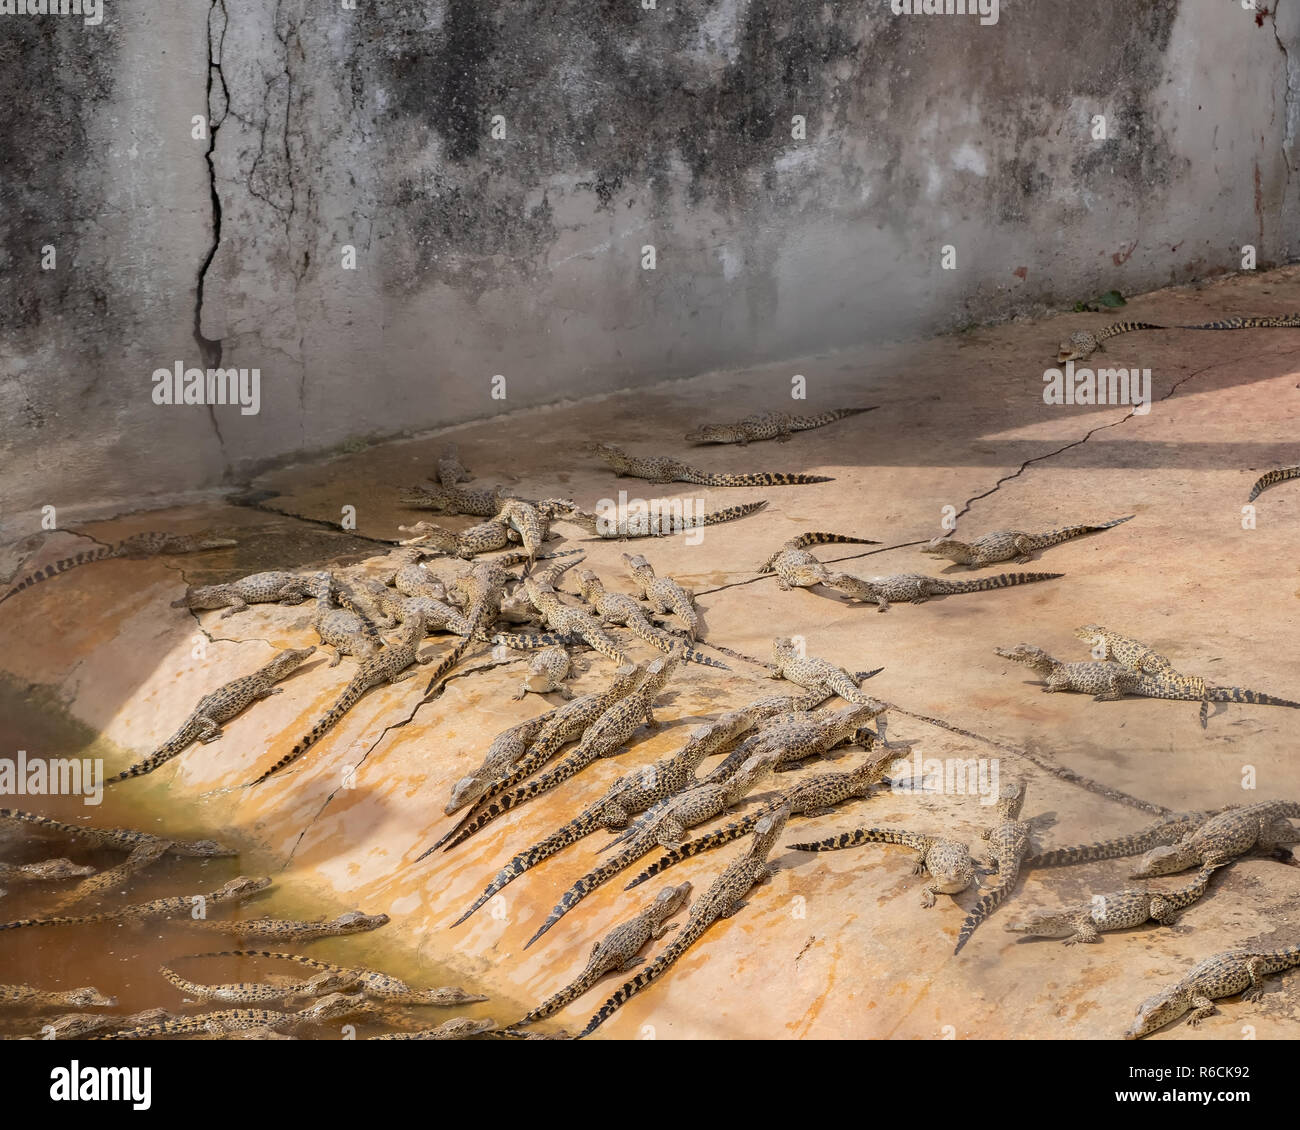 Baby crocodiles in a holding pen at a breeding facility in Cuba. Stock Photo